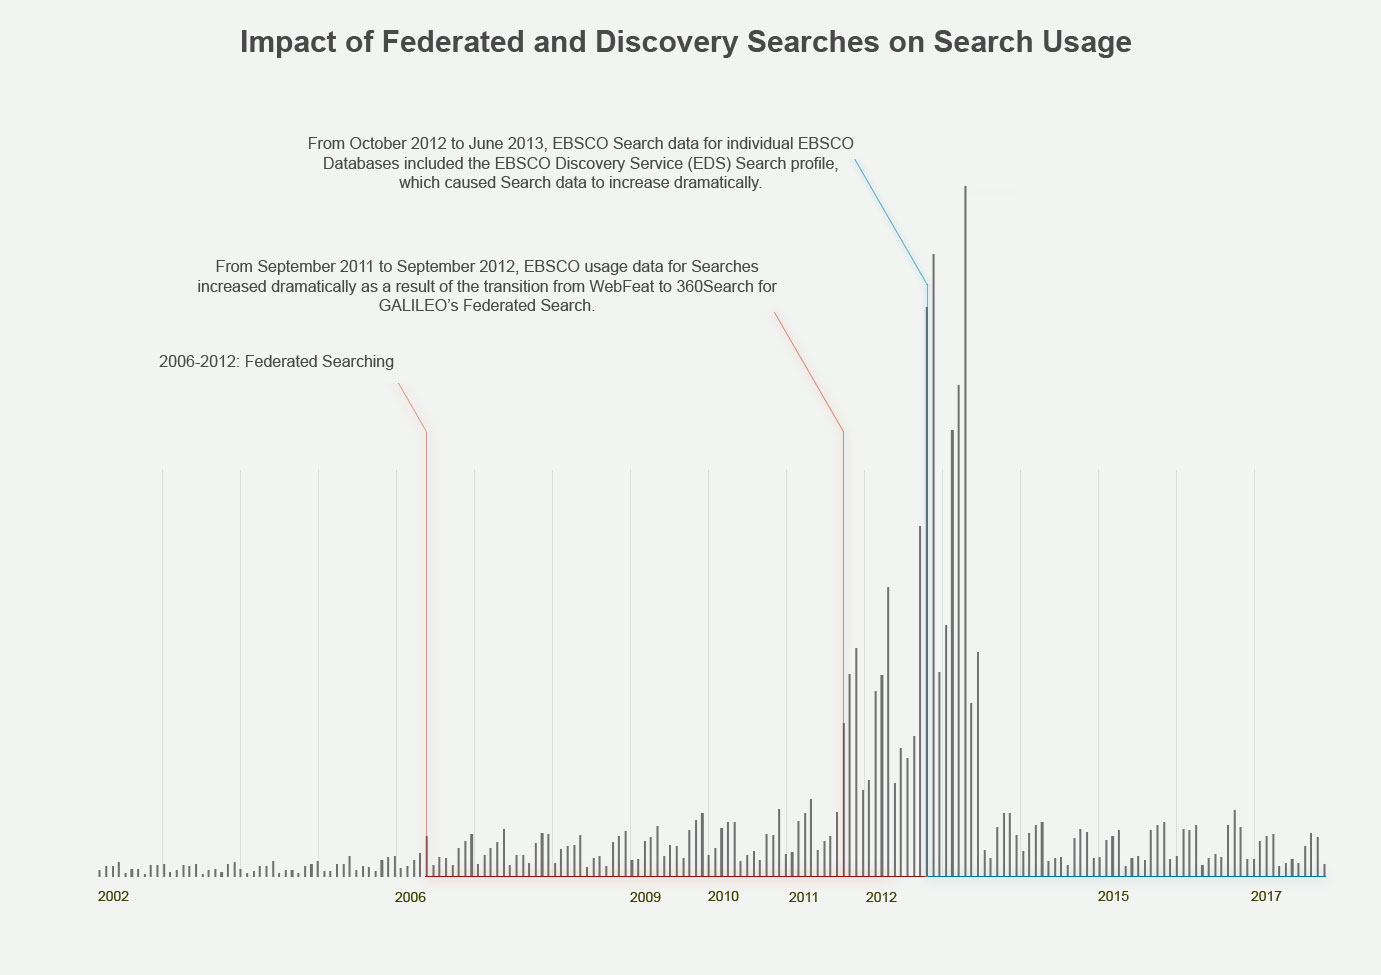 Impact on Searches